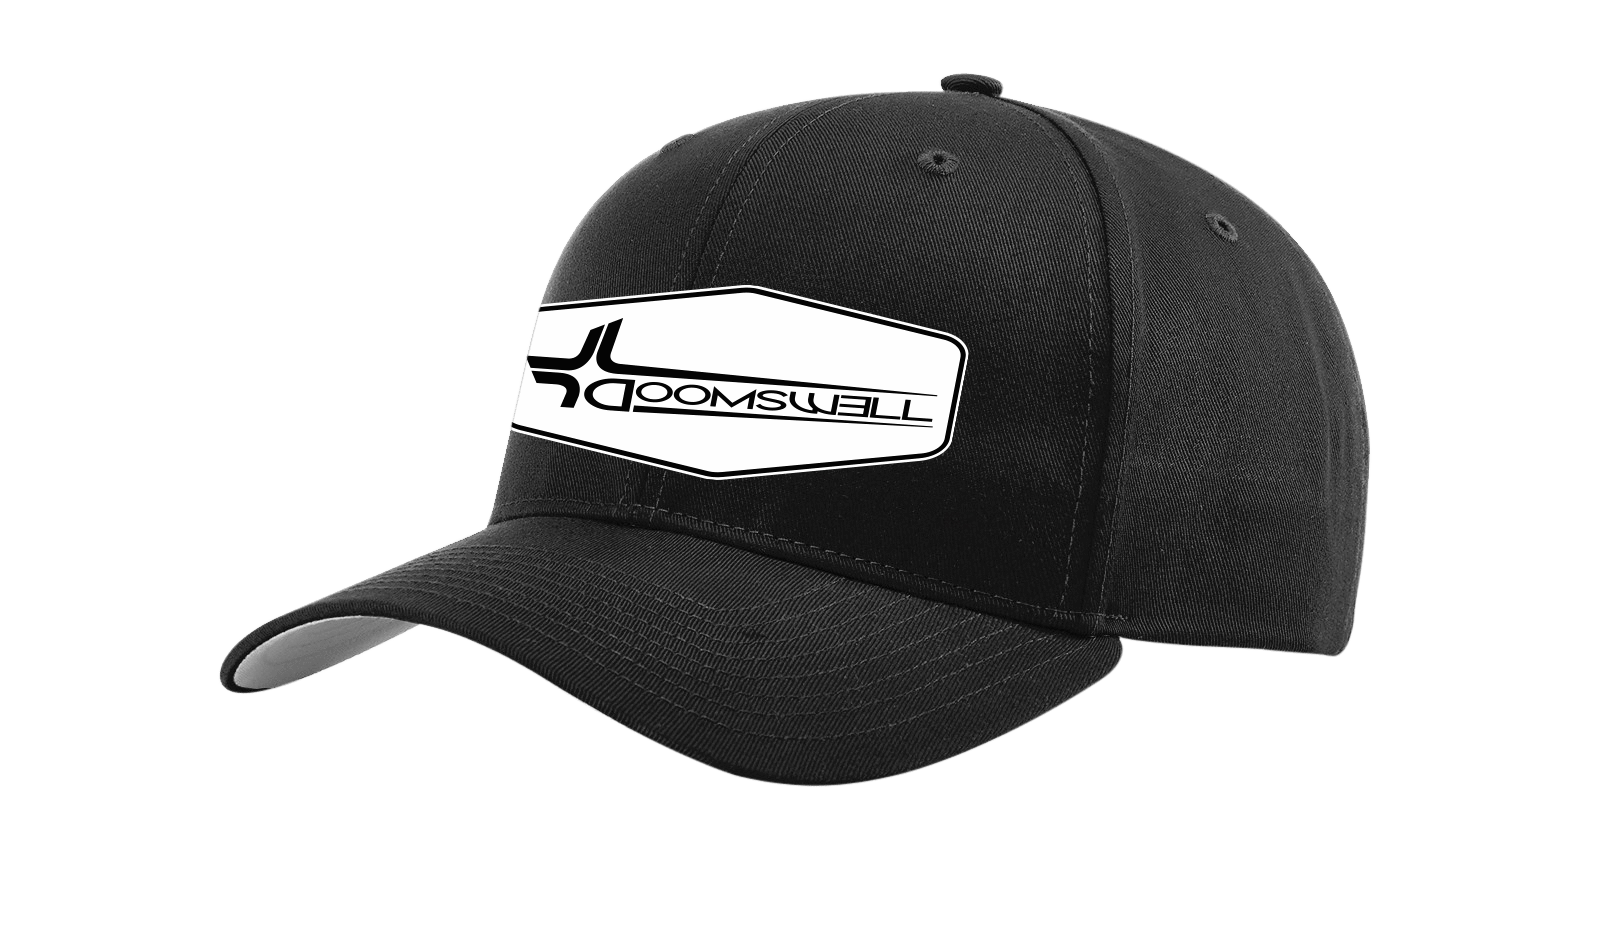 Doomswell Boarding Co. Hats Black OG Hat-Low Profile Black